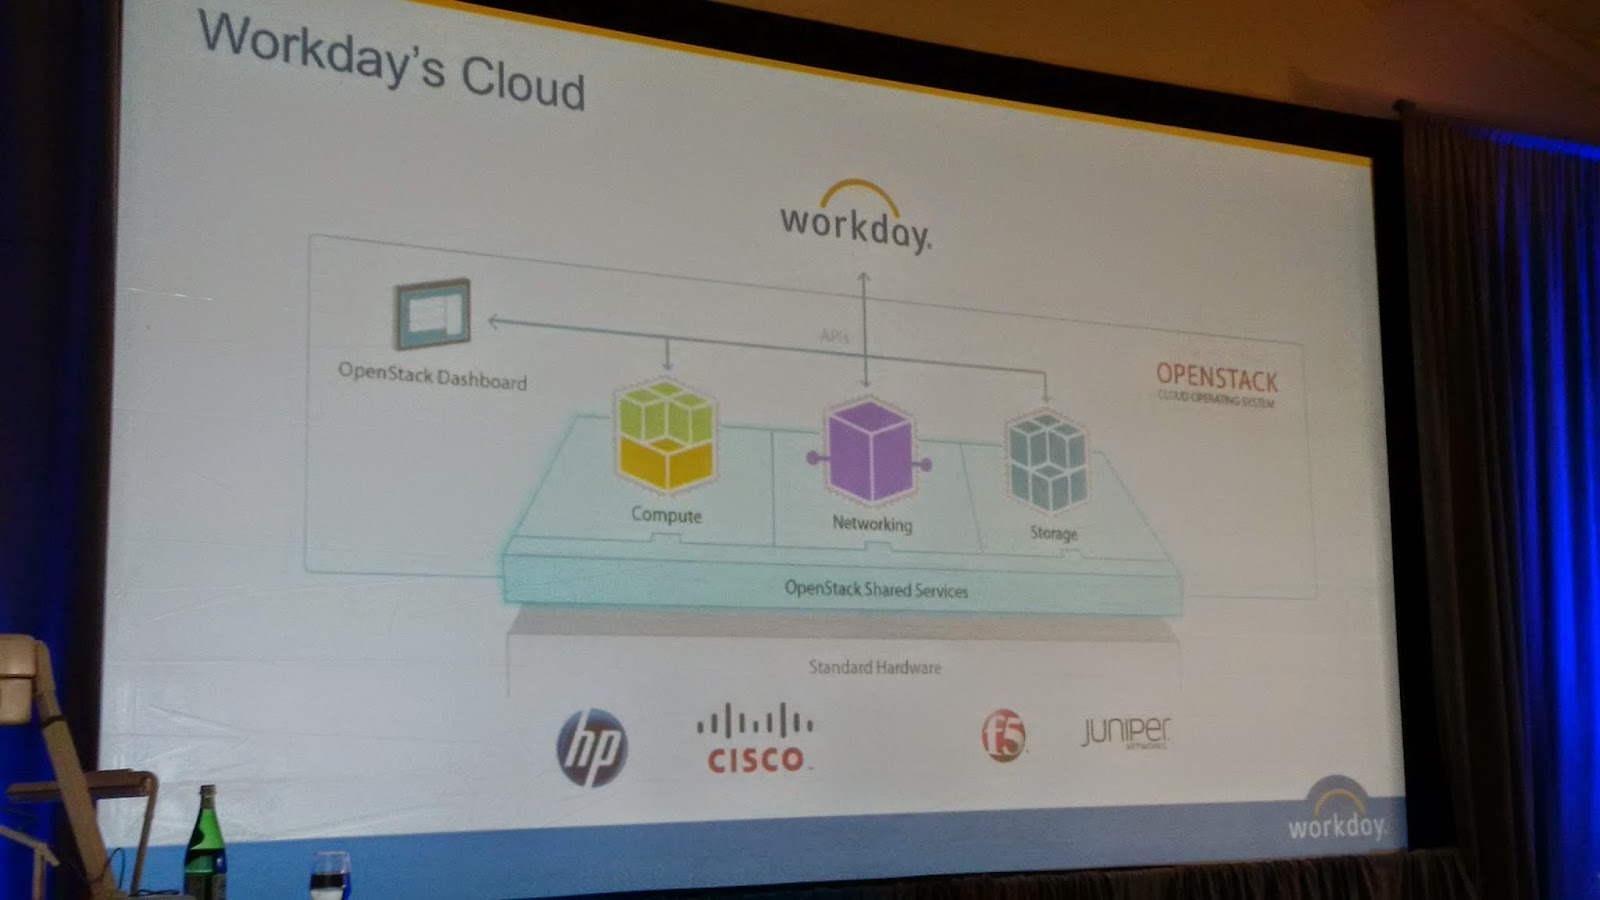 Progress Report - Workday supports more cloud standards - but work